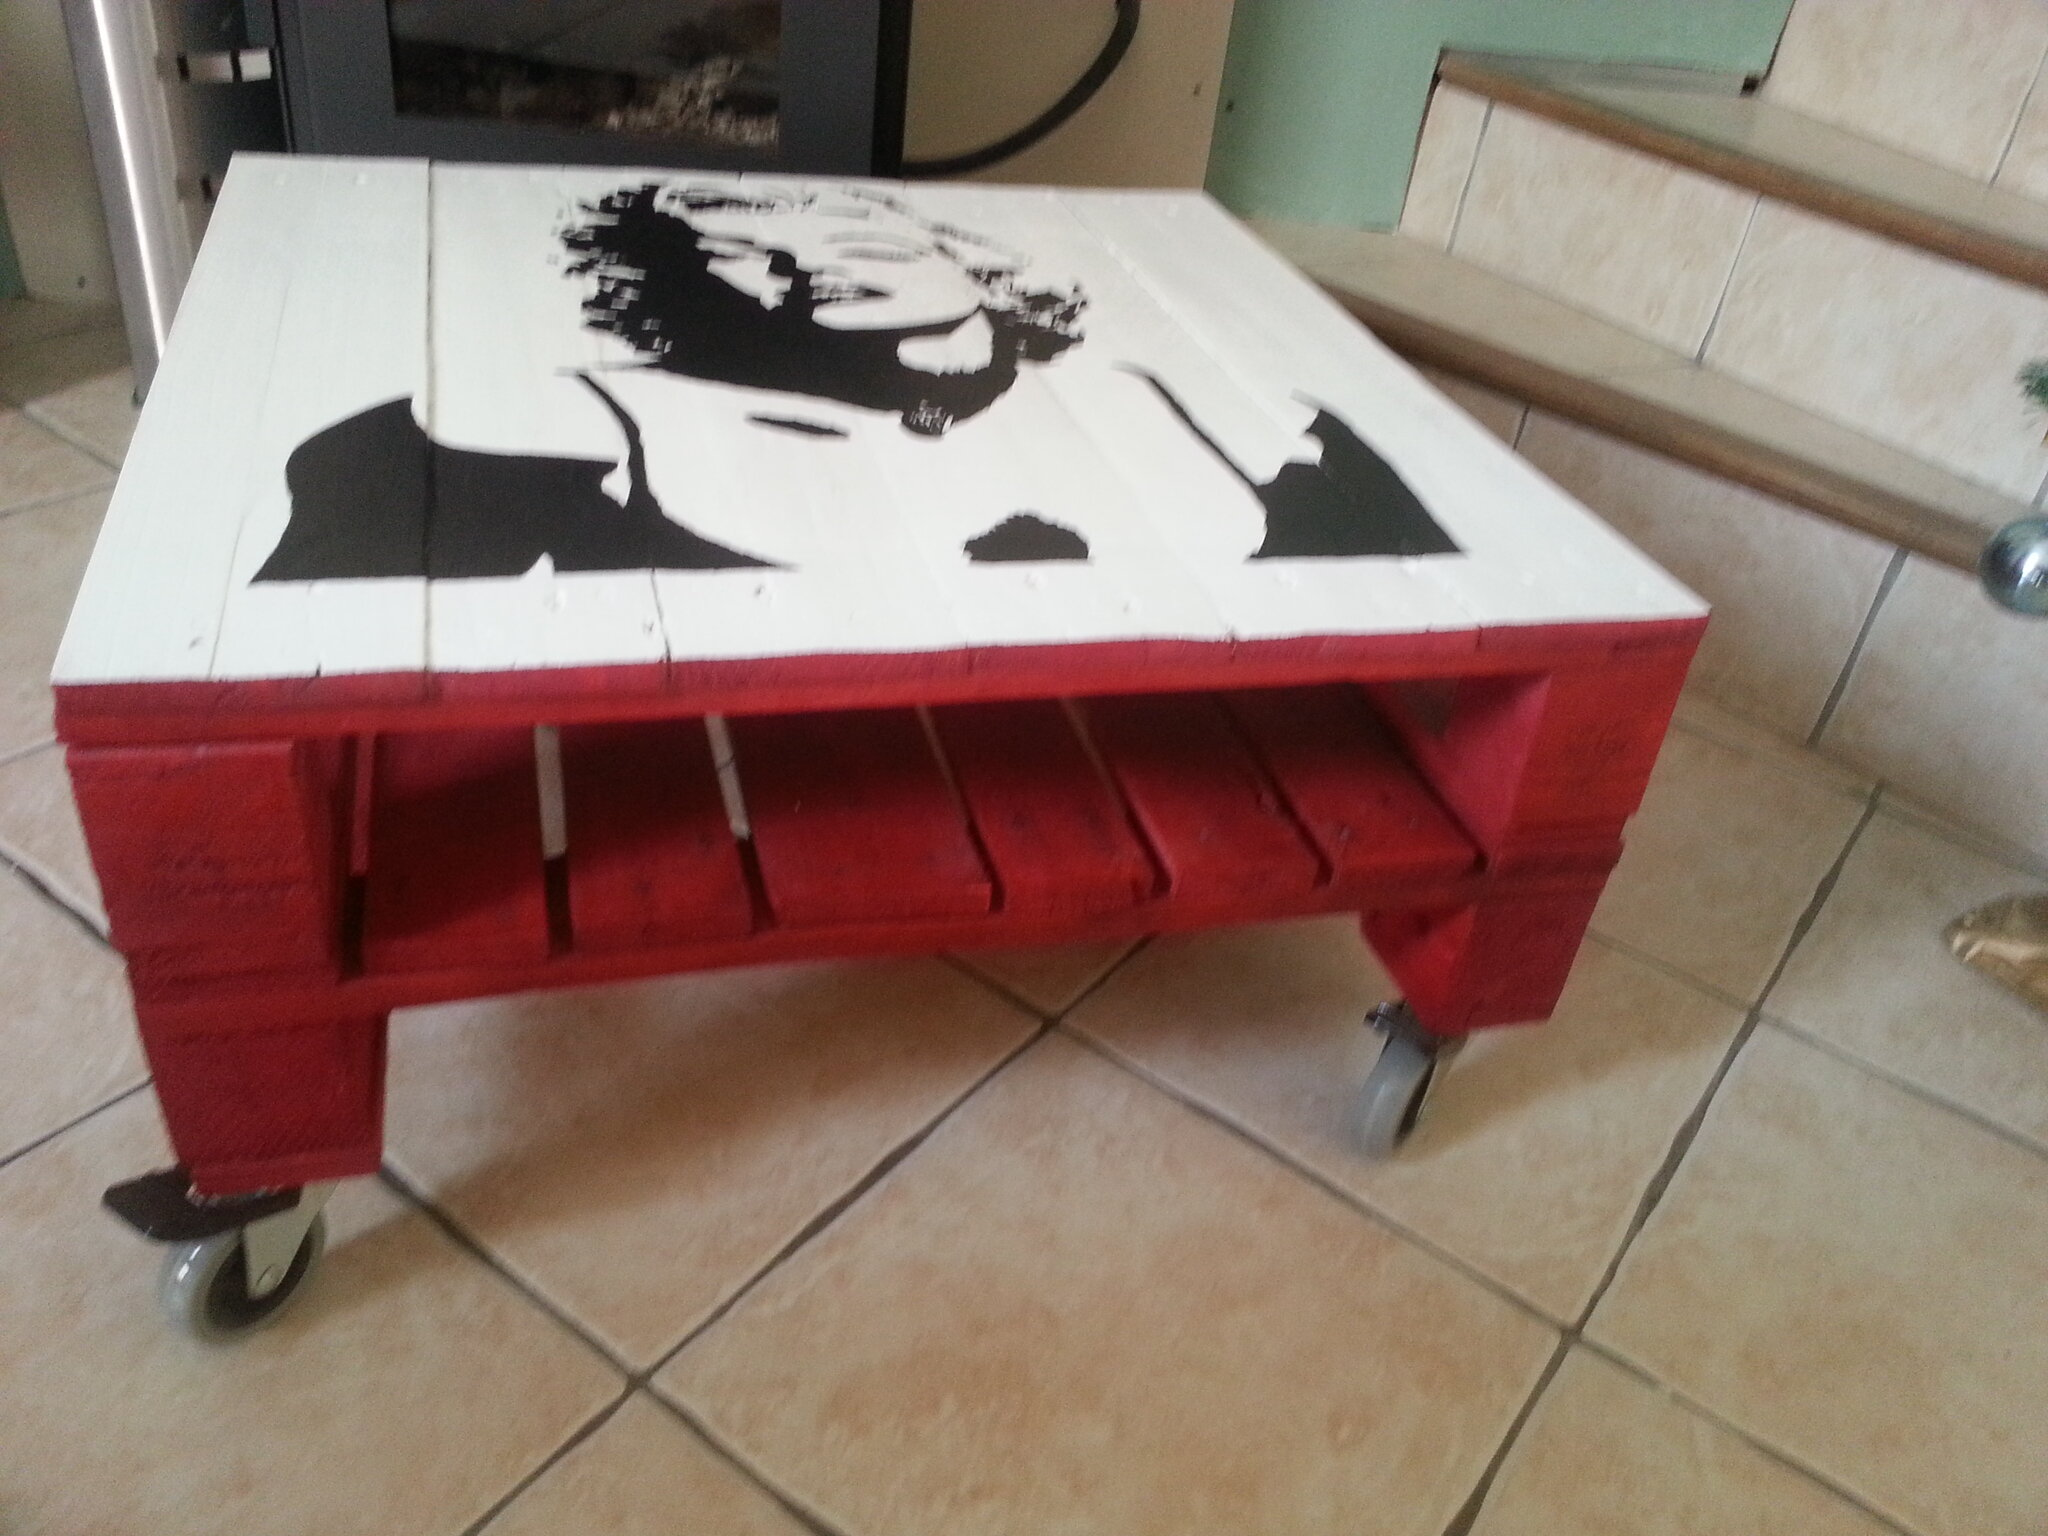 Table basse marylin monroe en palette en bois r cup 39 art d co - Table en palette de bois ...